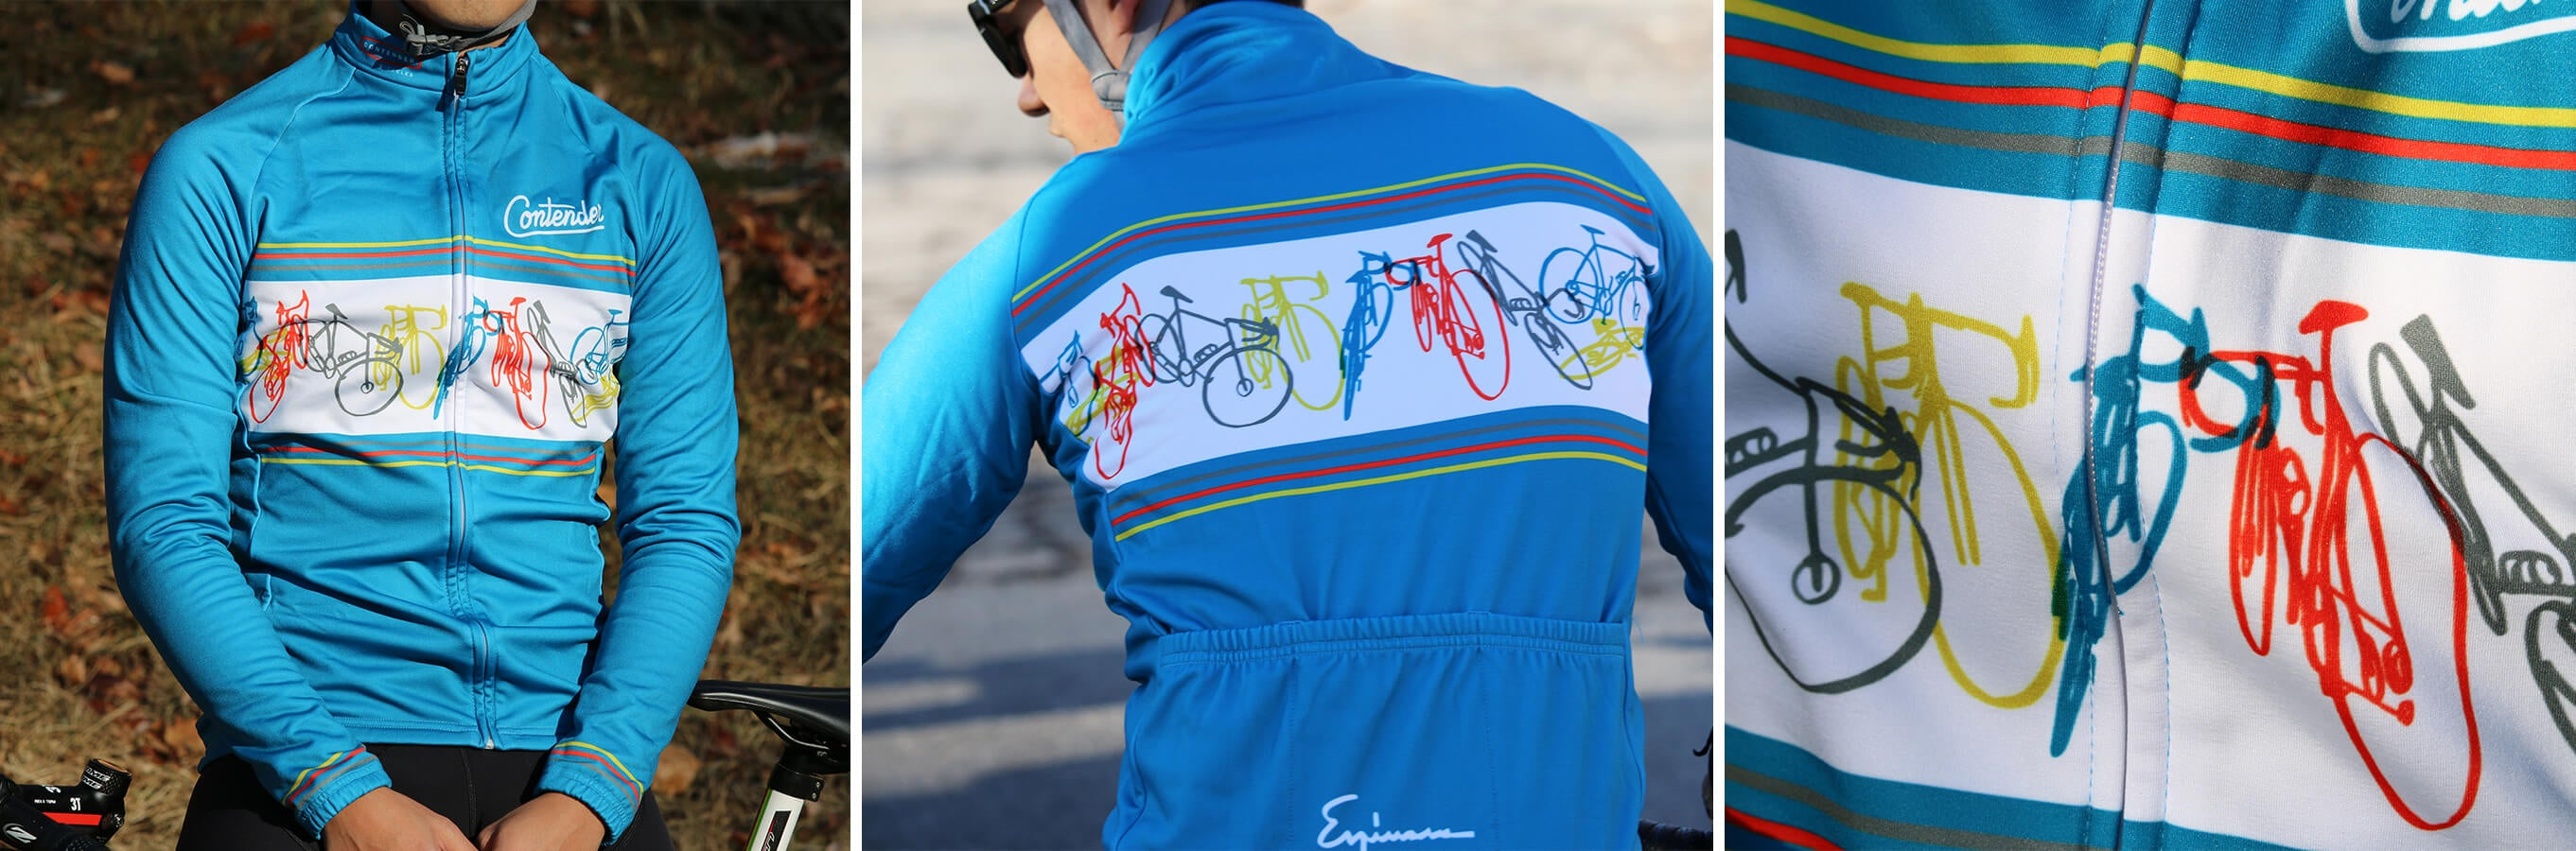 Contender x Espinosa Jersey Blue - Contender Bicycles